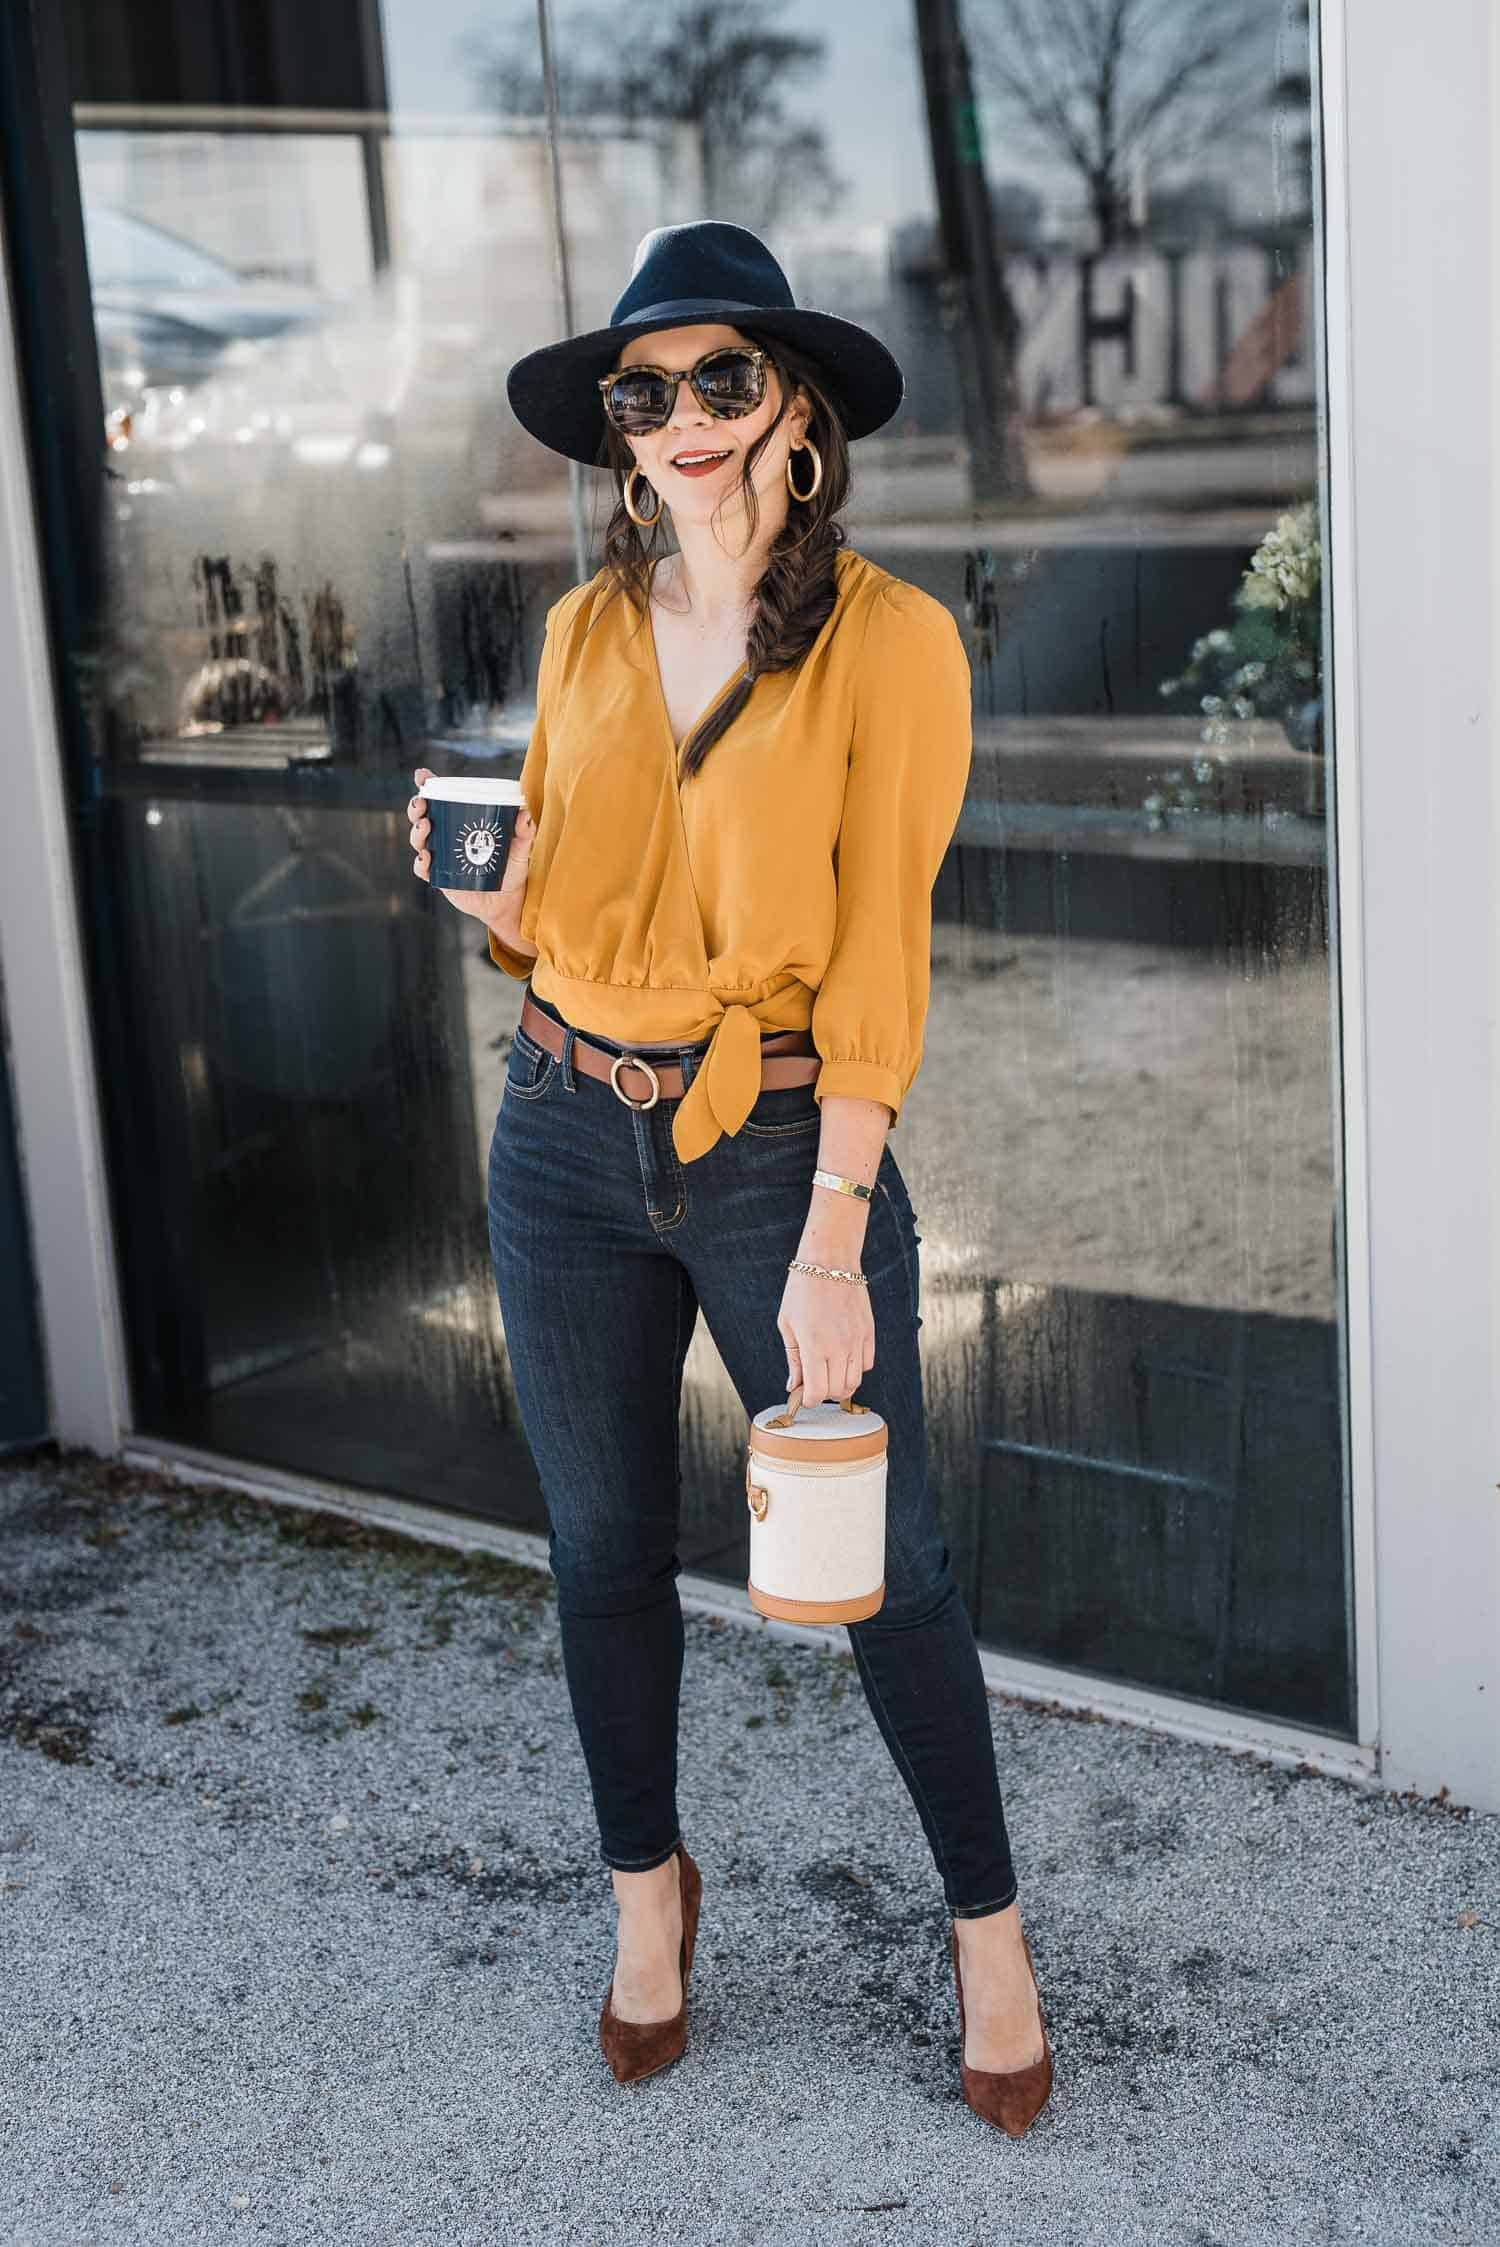 Mustard and Navy Outfit Ideas by Jessica Camerata